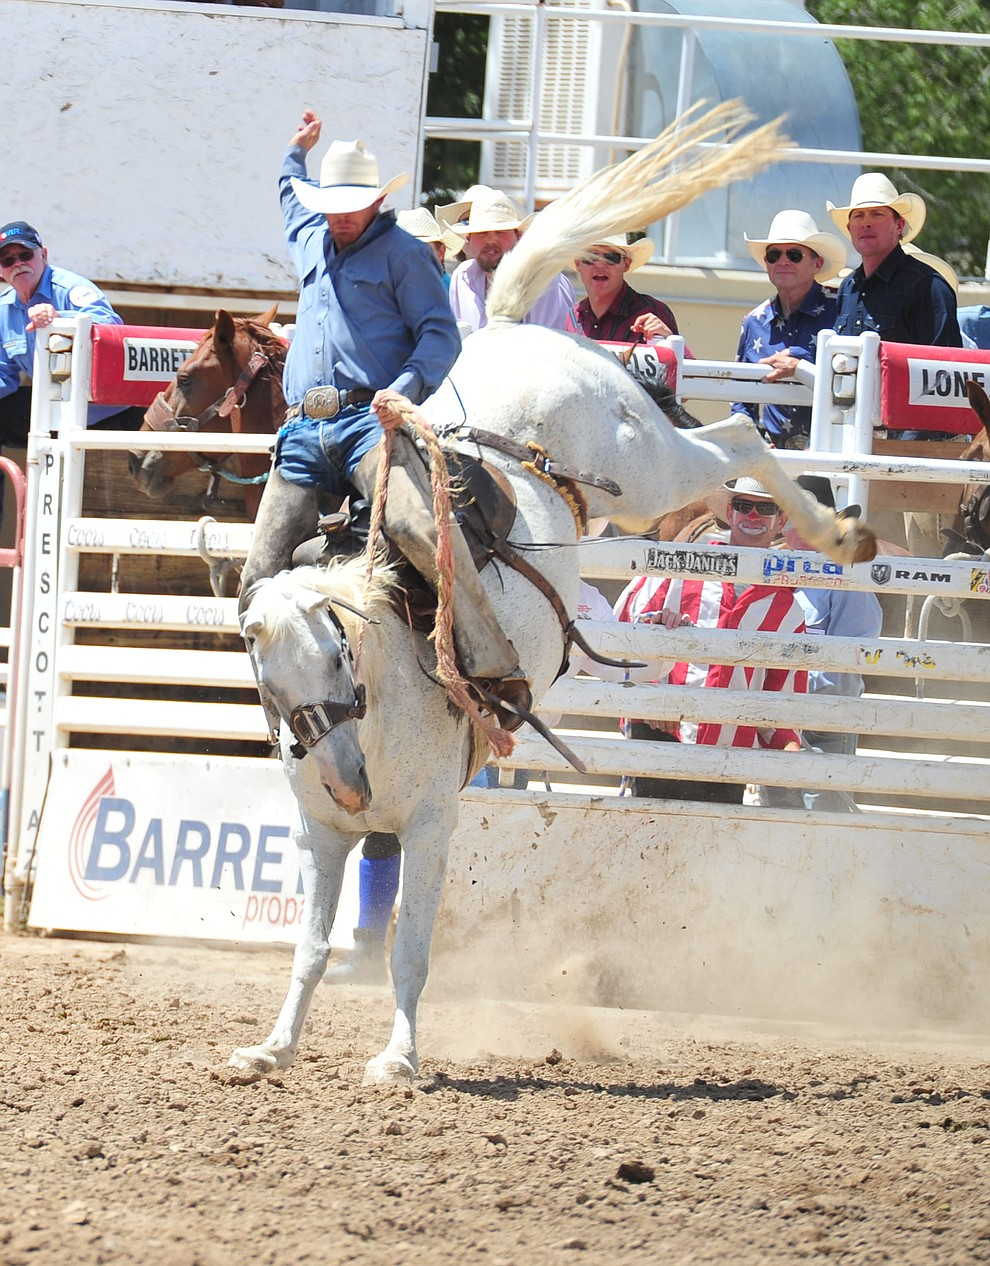 Zary May scores 78 on Feather Delight in the Cowpunchers Bronc Riding during the final performance of the 2018 Prescott Frontier Days Rodeo Wednesday, July 4, 2018. (Les Stukenberg/Courier)